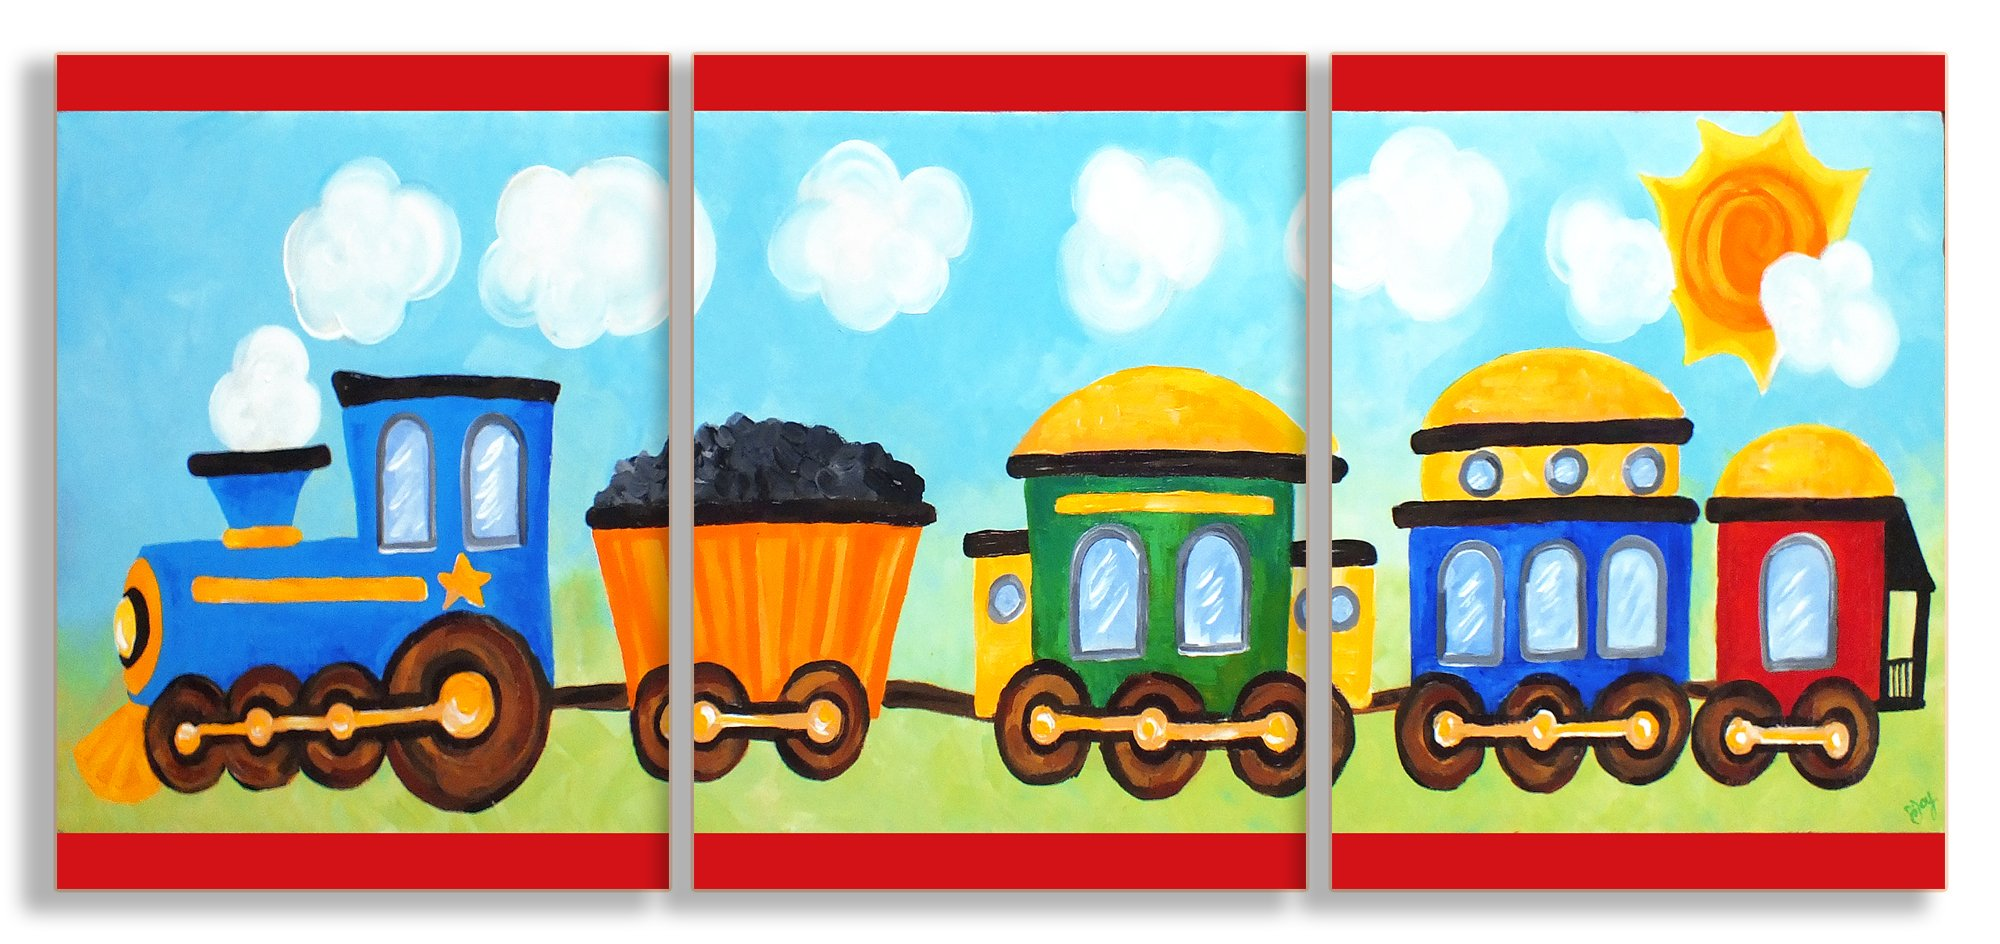 The Kids Room by Stupell Choo Choo Train in The Sun 3-Pc. Rectangle Wall Plaque Set, 11 x 0.5 x 15, Proudly Made in USA by The Kids Room by Stupell